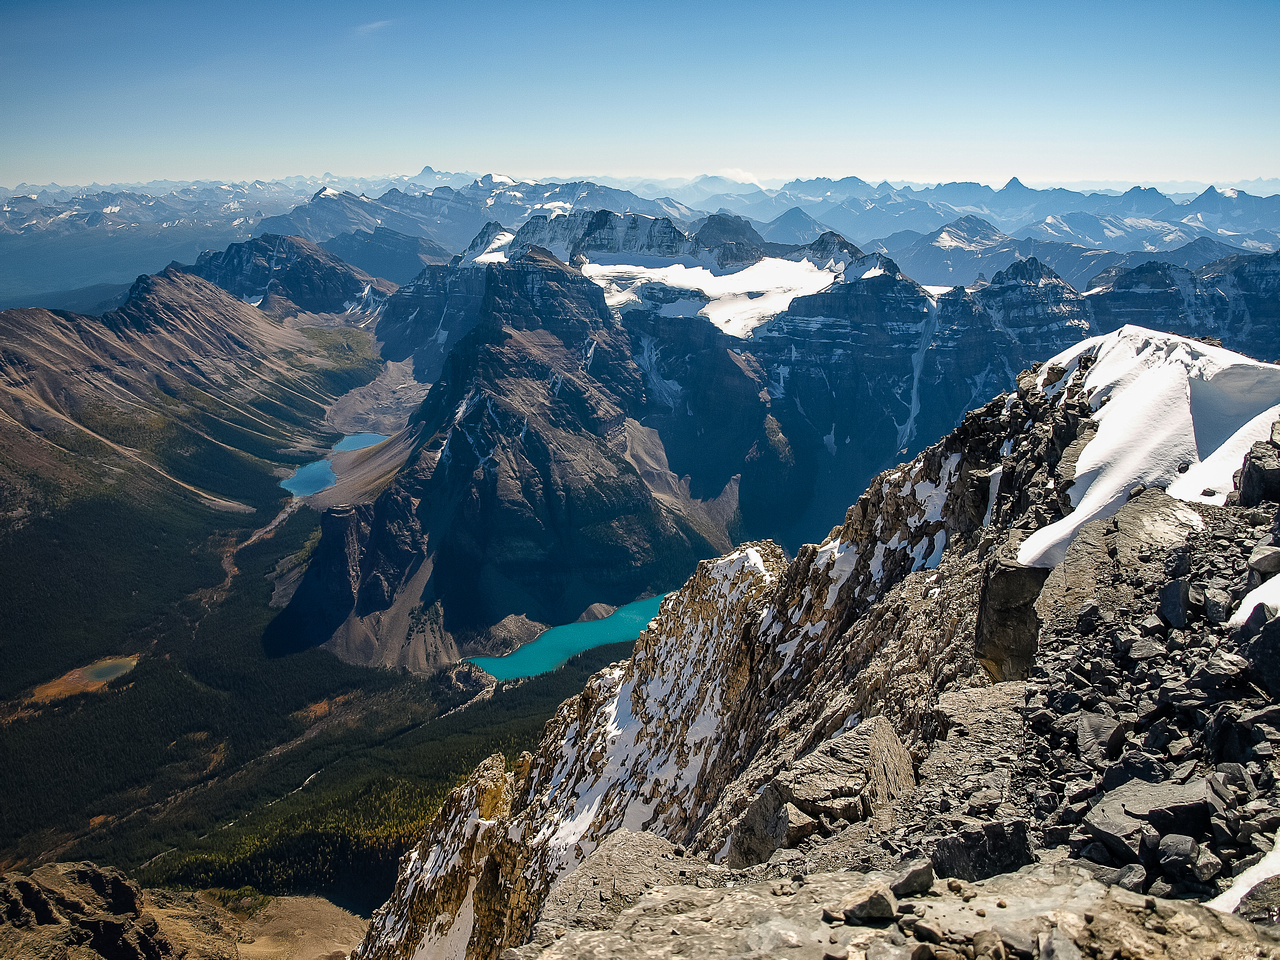 The view from my perch just to the east of the summit. Consolation Lakes and Moraine Lake sneak into view.